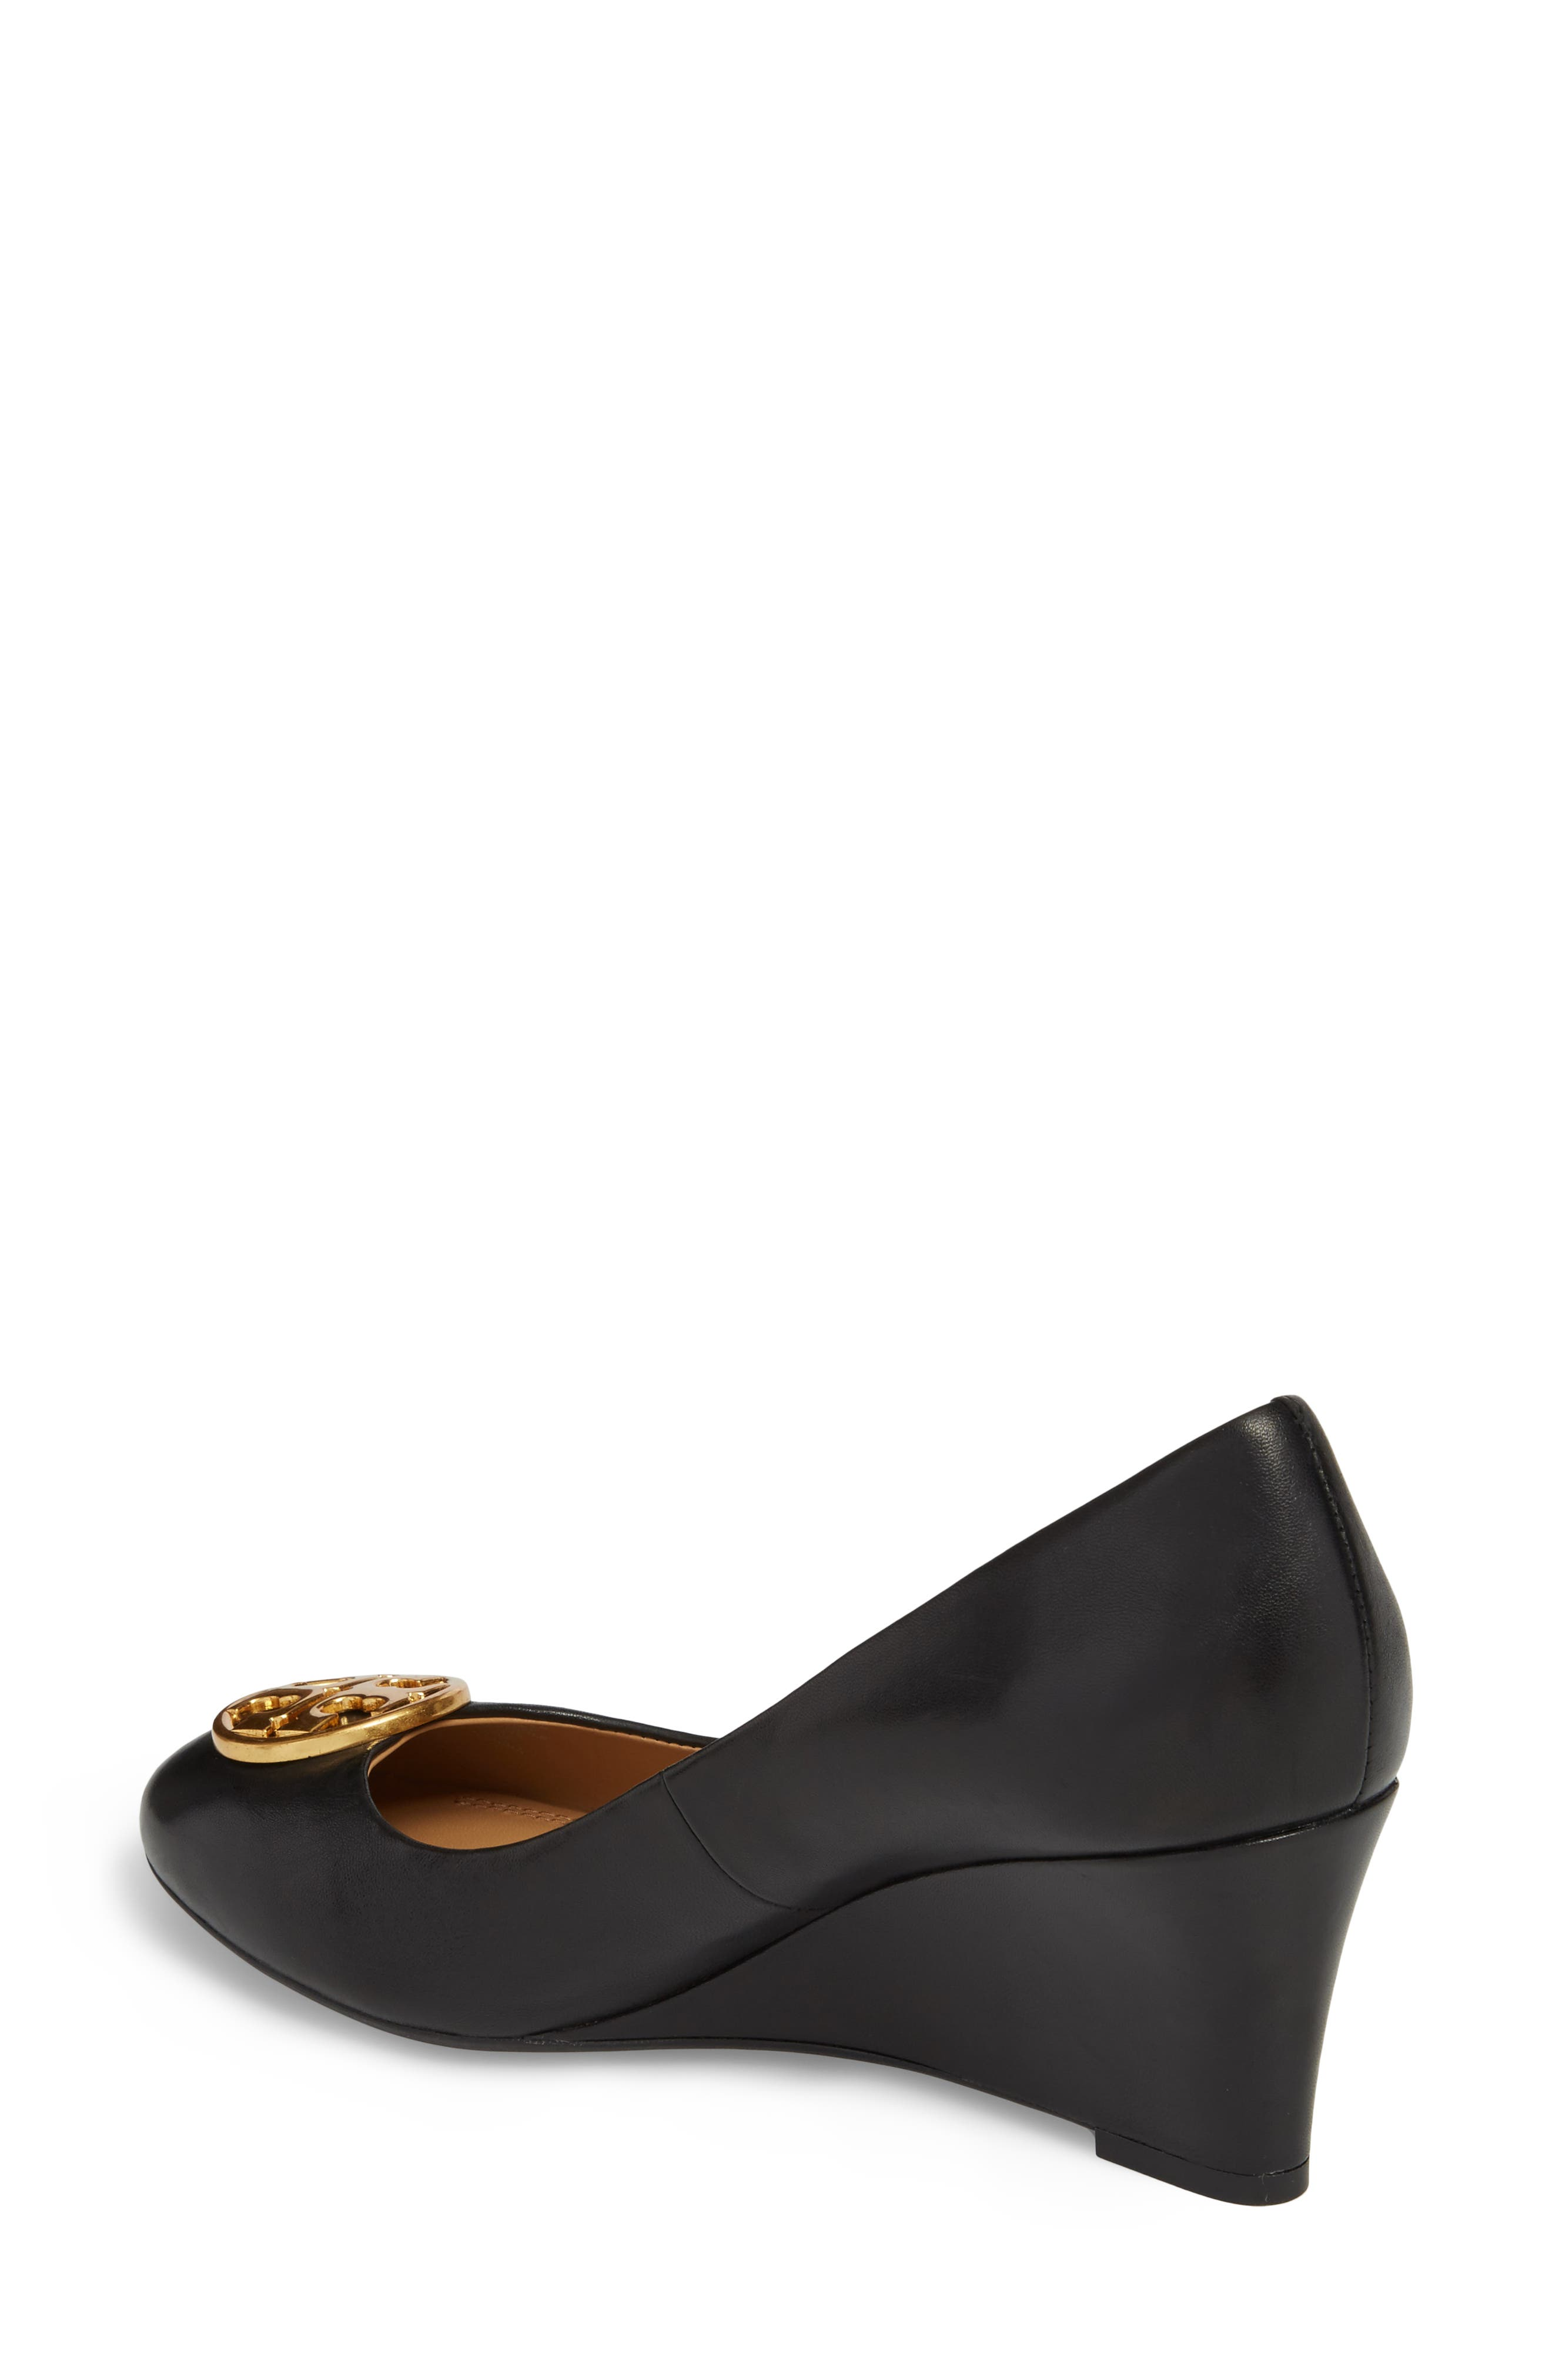 9ff8f7bb5888 Tory Burch Wedges for Women